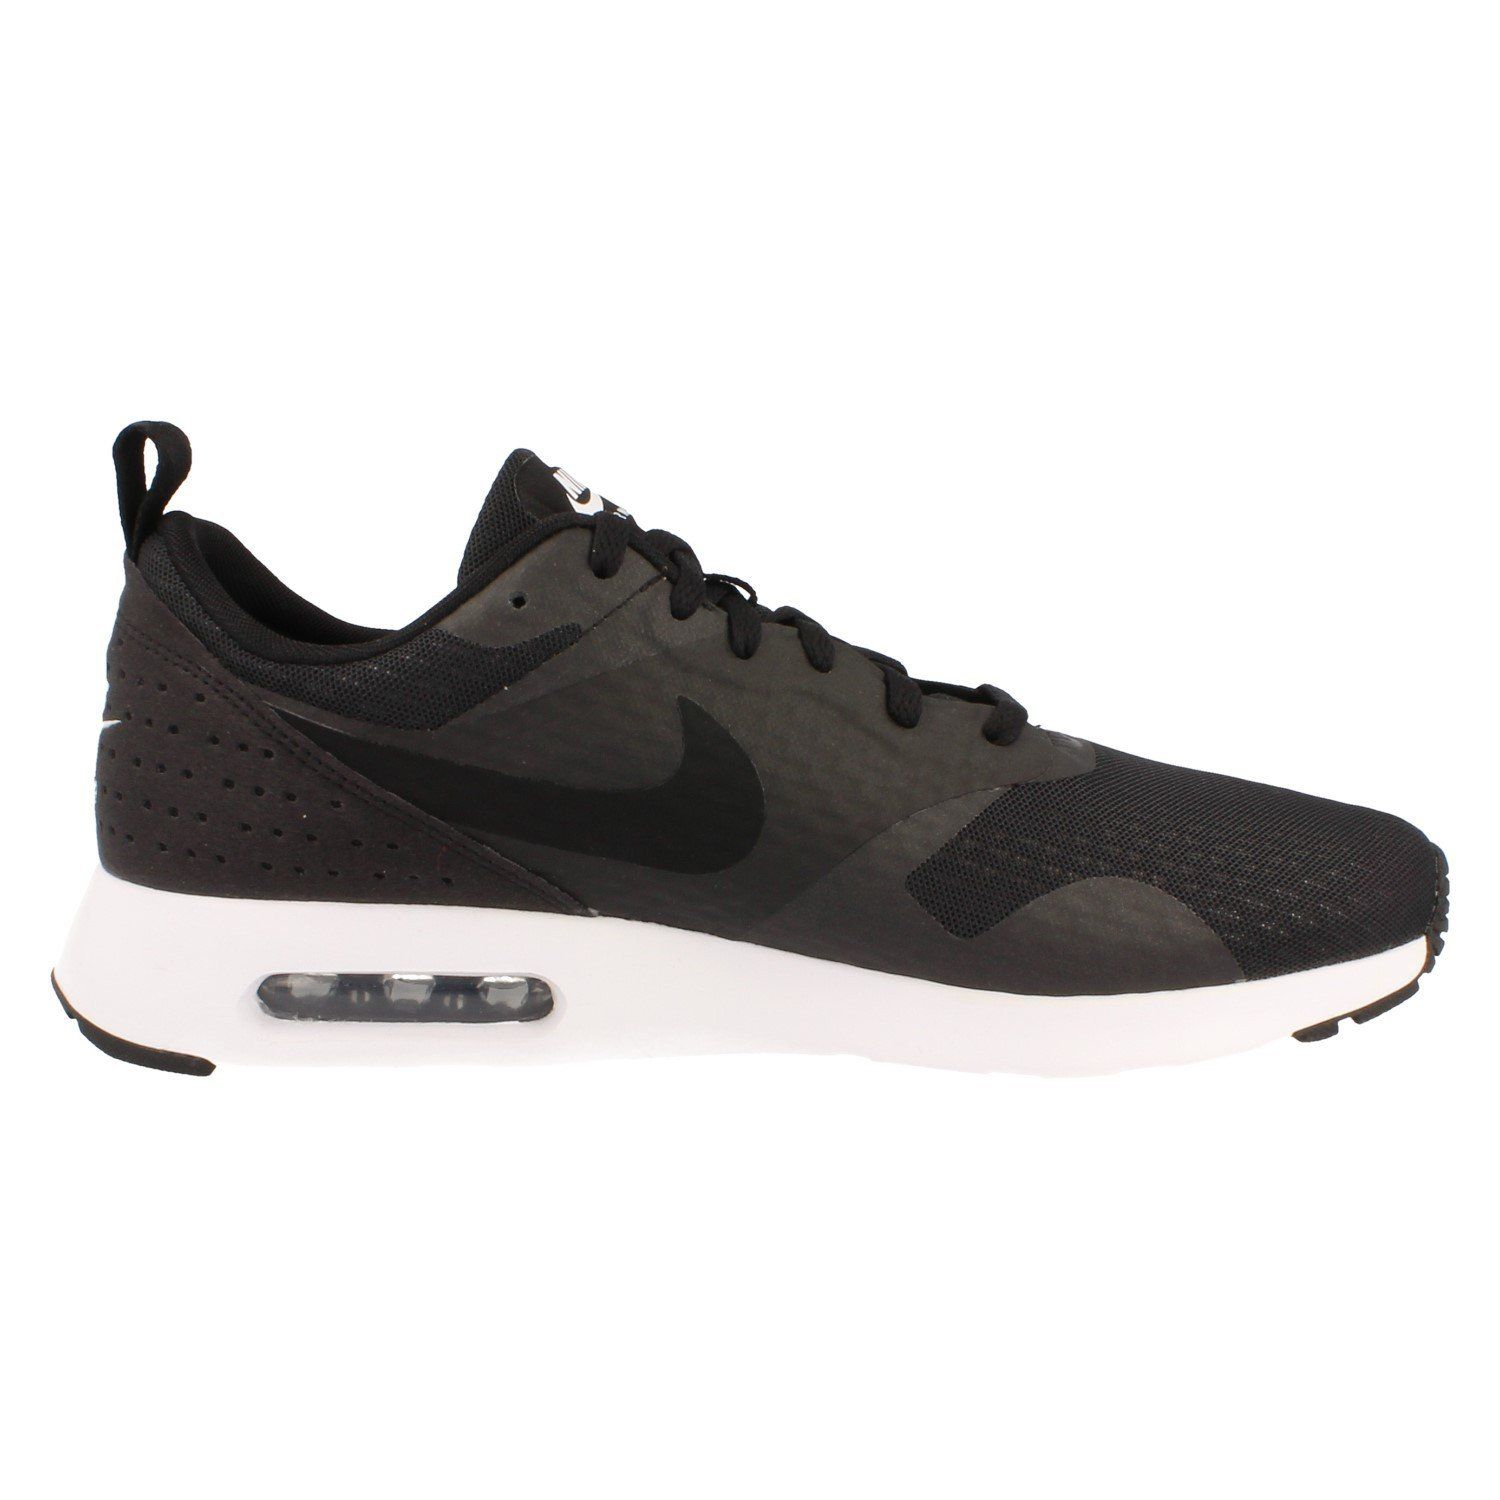 Nike air max tavas black cool grey anthracite pictures to pin on - Nike Nike Air Max Tavas Essential 725073001 Herren